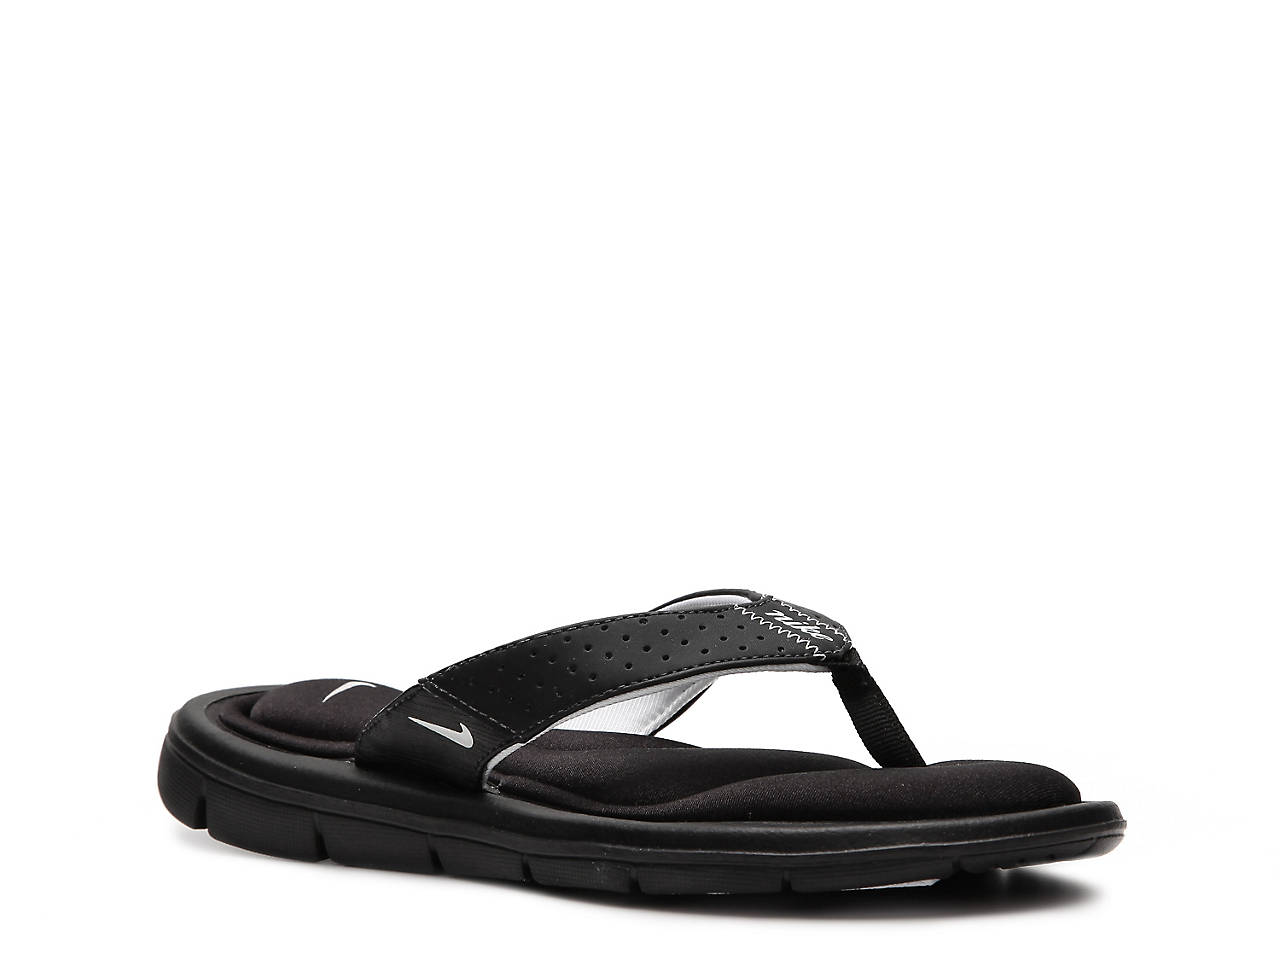 c0882986098d Nike Comfort Flip Flop Women s Shoes